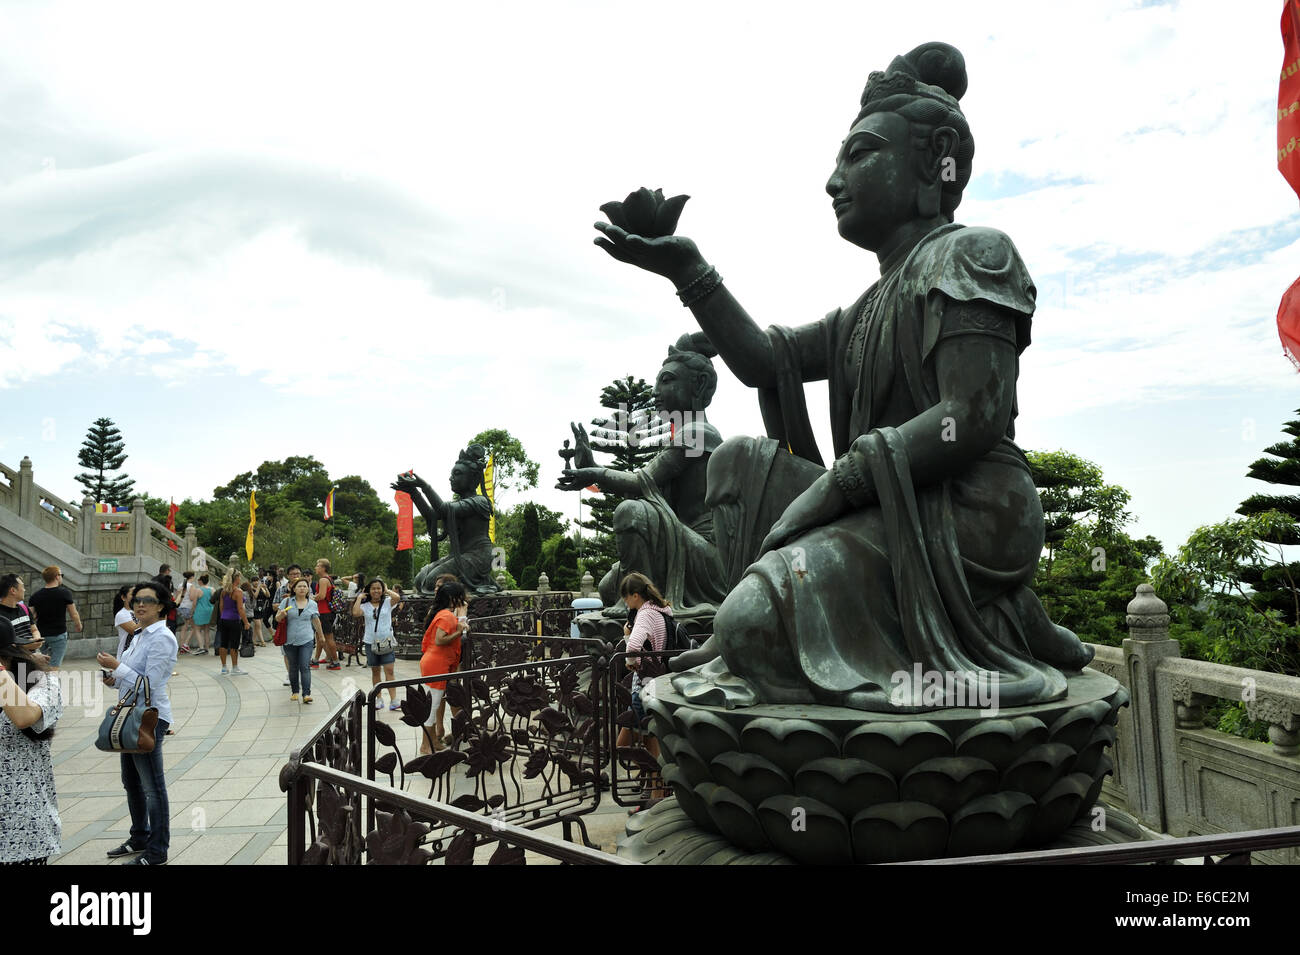 Three of the six Divas known as 'The offering of the six Divas'; bronze statues at the Tian Tan Buddha, - Stock Image